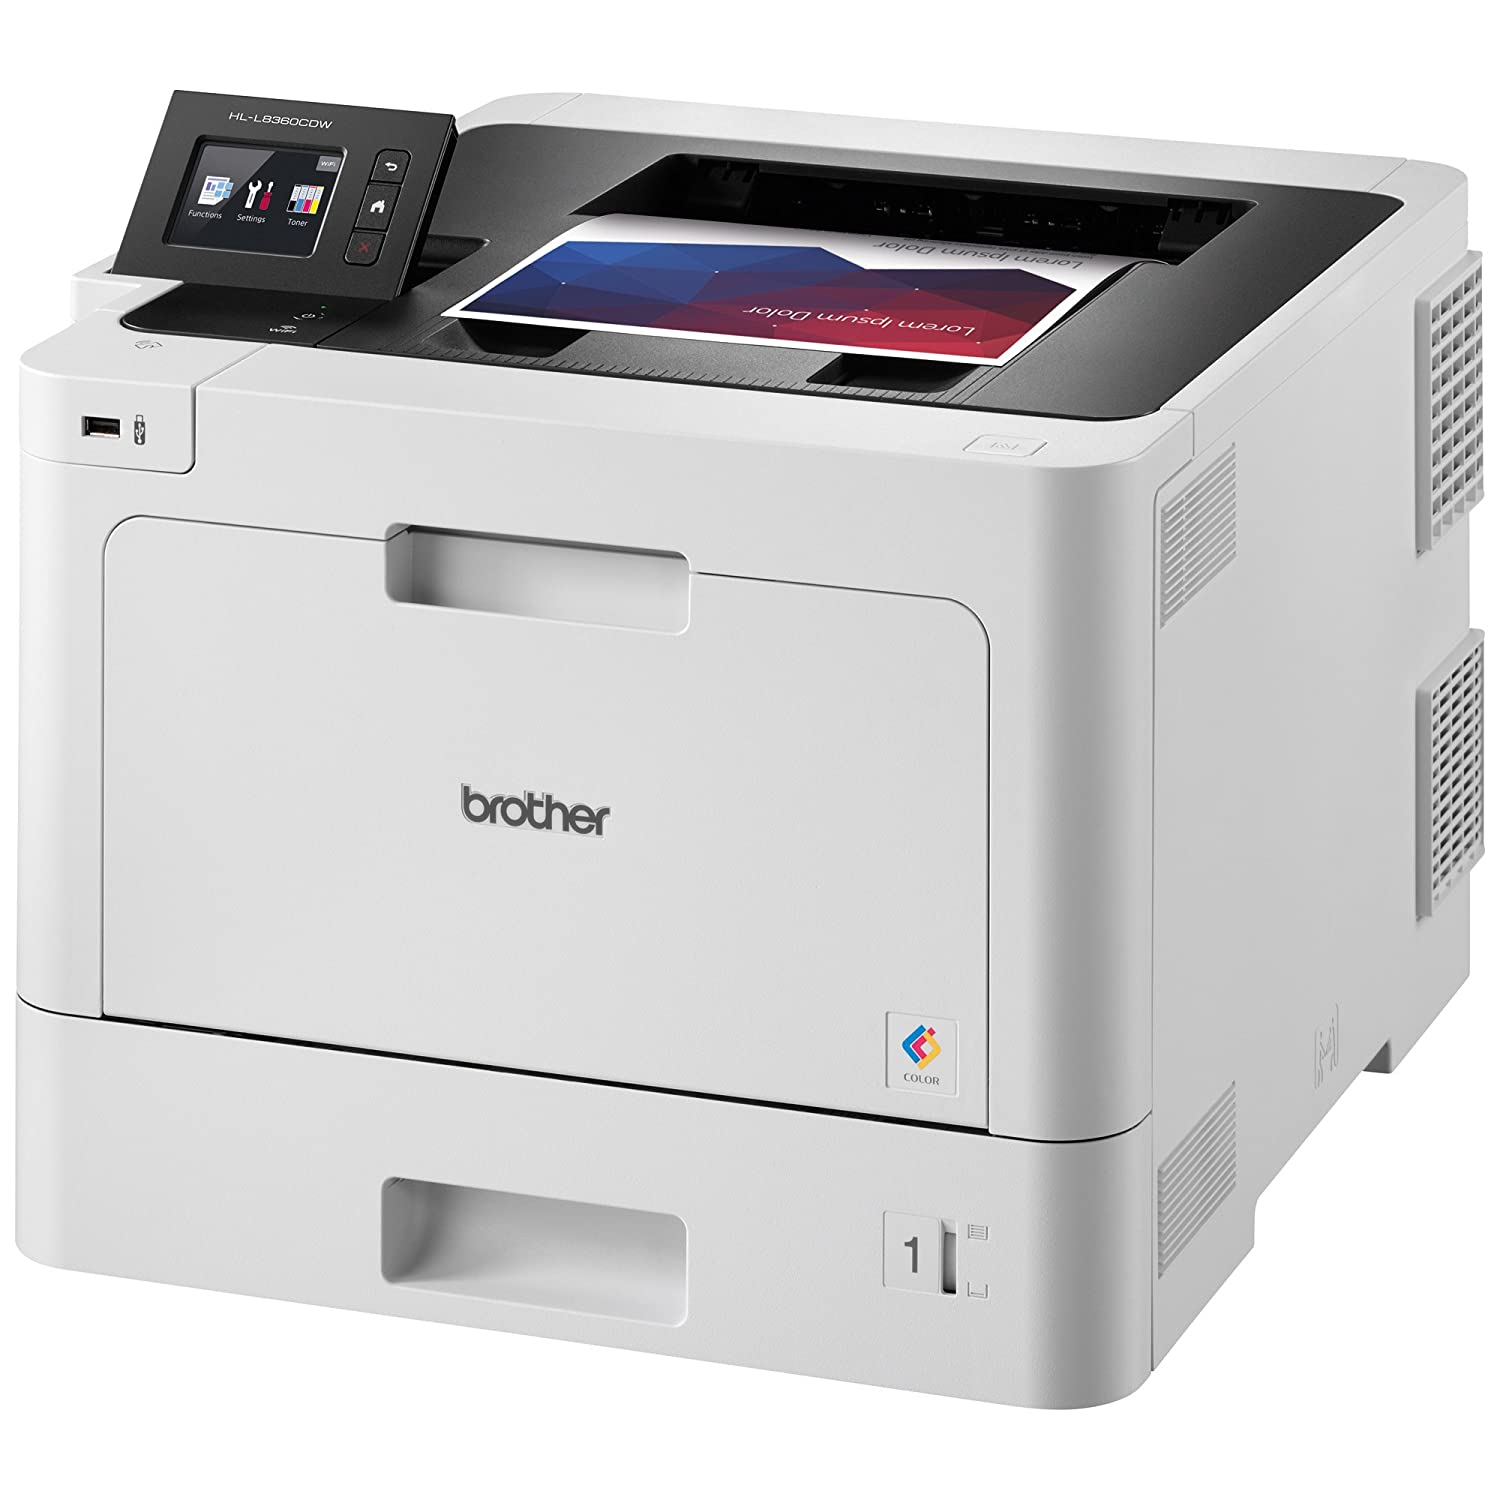 Brother Business Wireless Printer HL-L8360CDW Black Friday Deal 2019